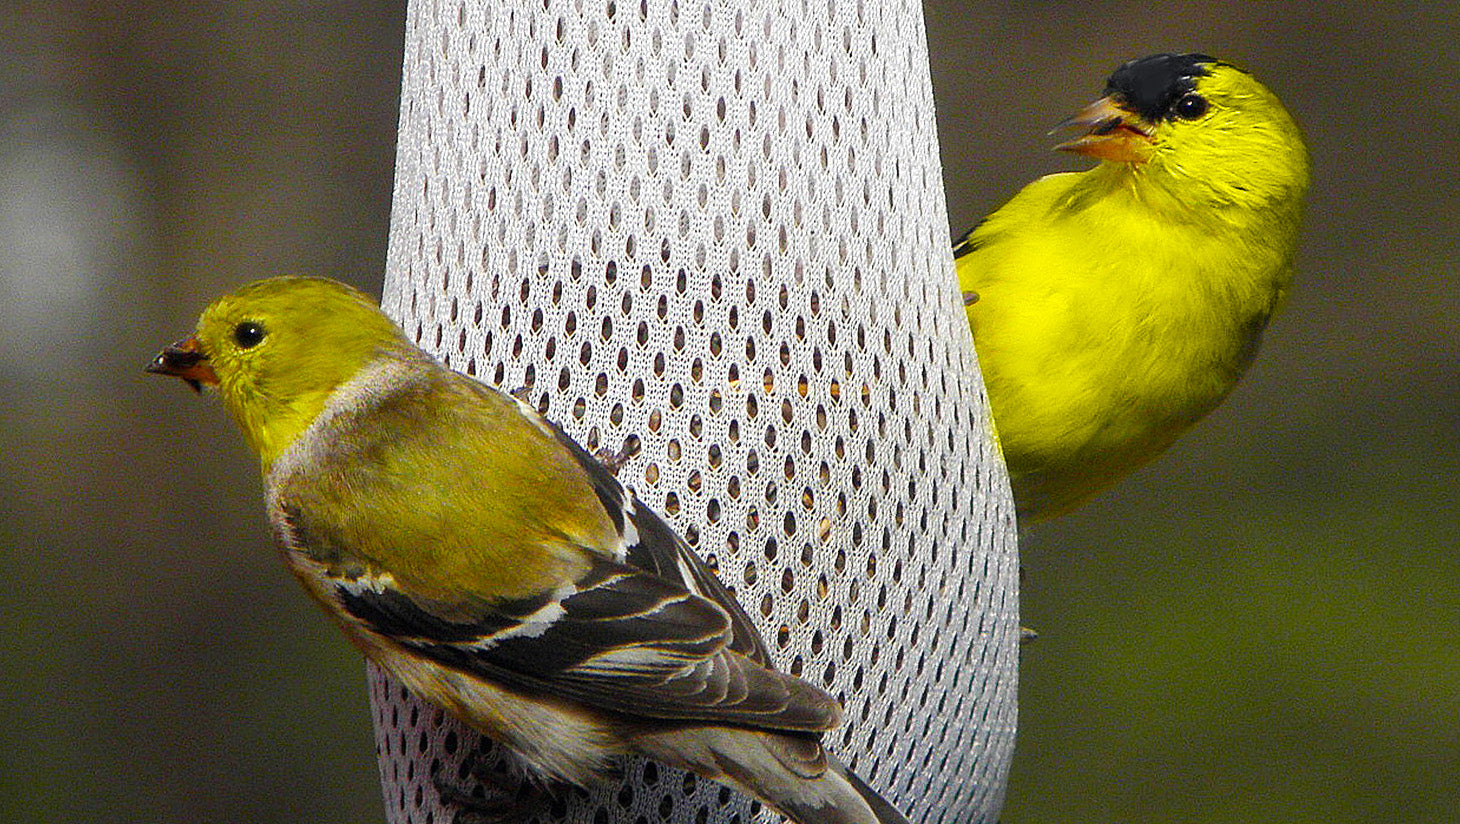 Yellow finch eating seed and hanging onto a Nyjer seed filled feeding sock